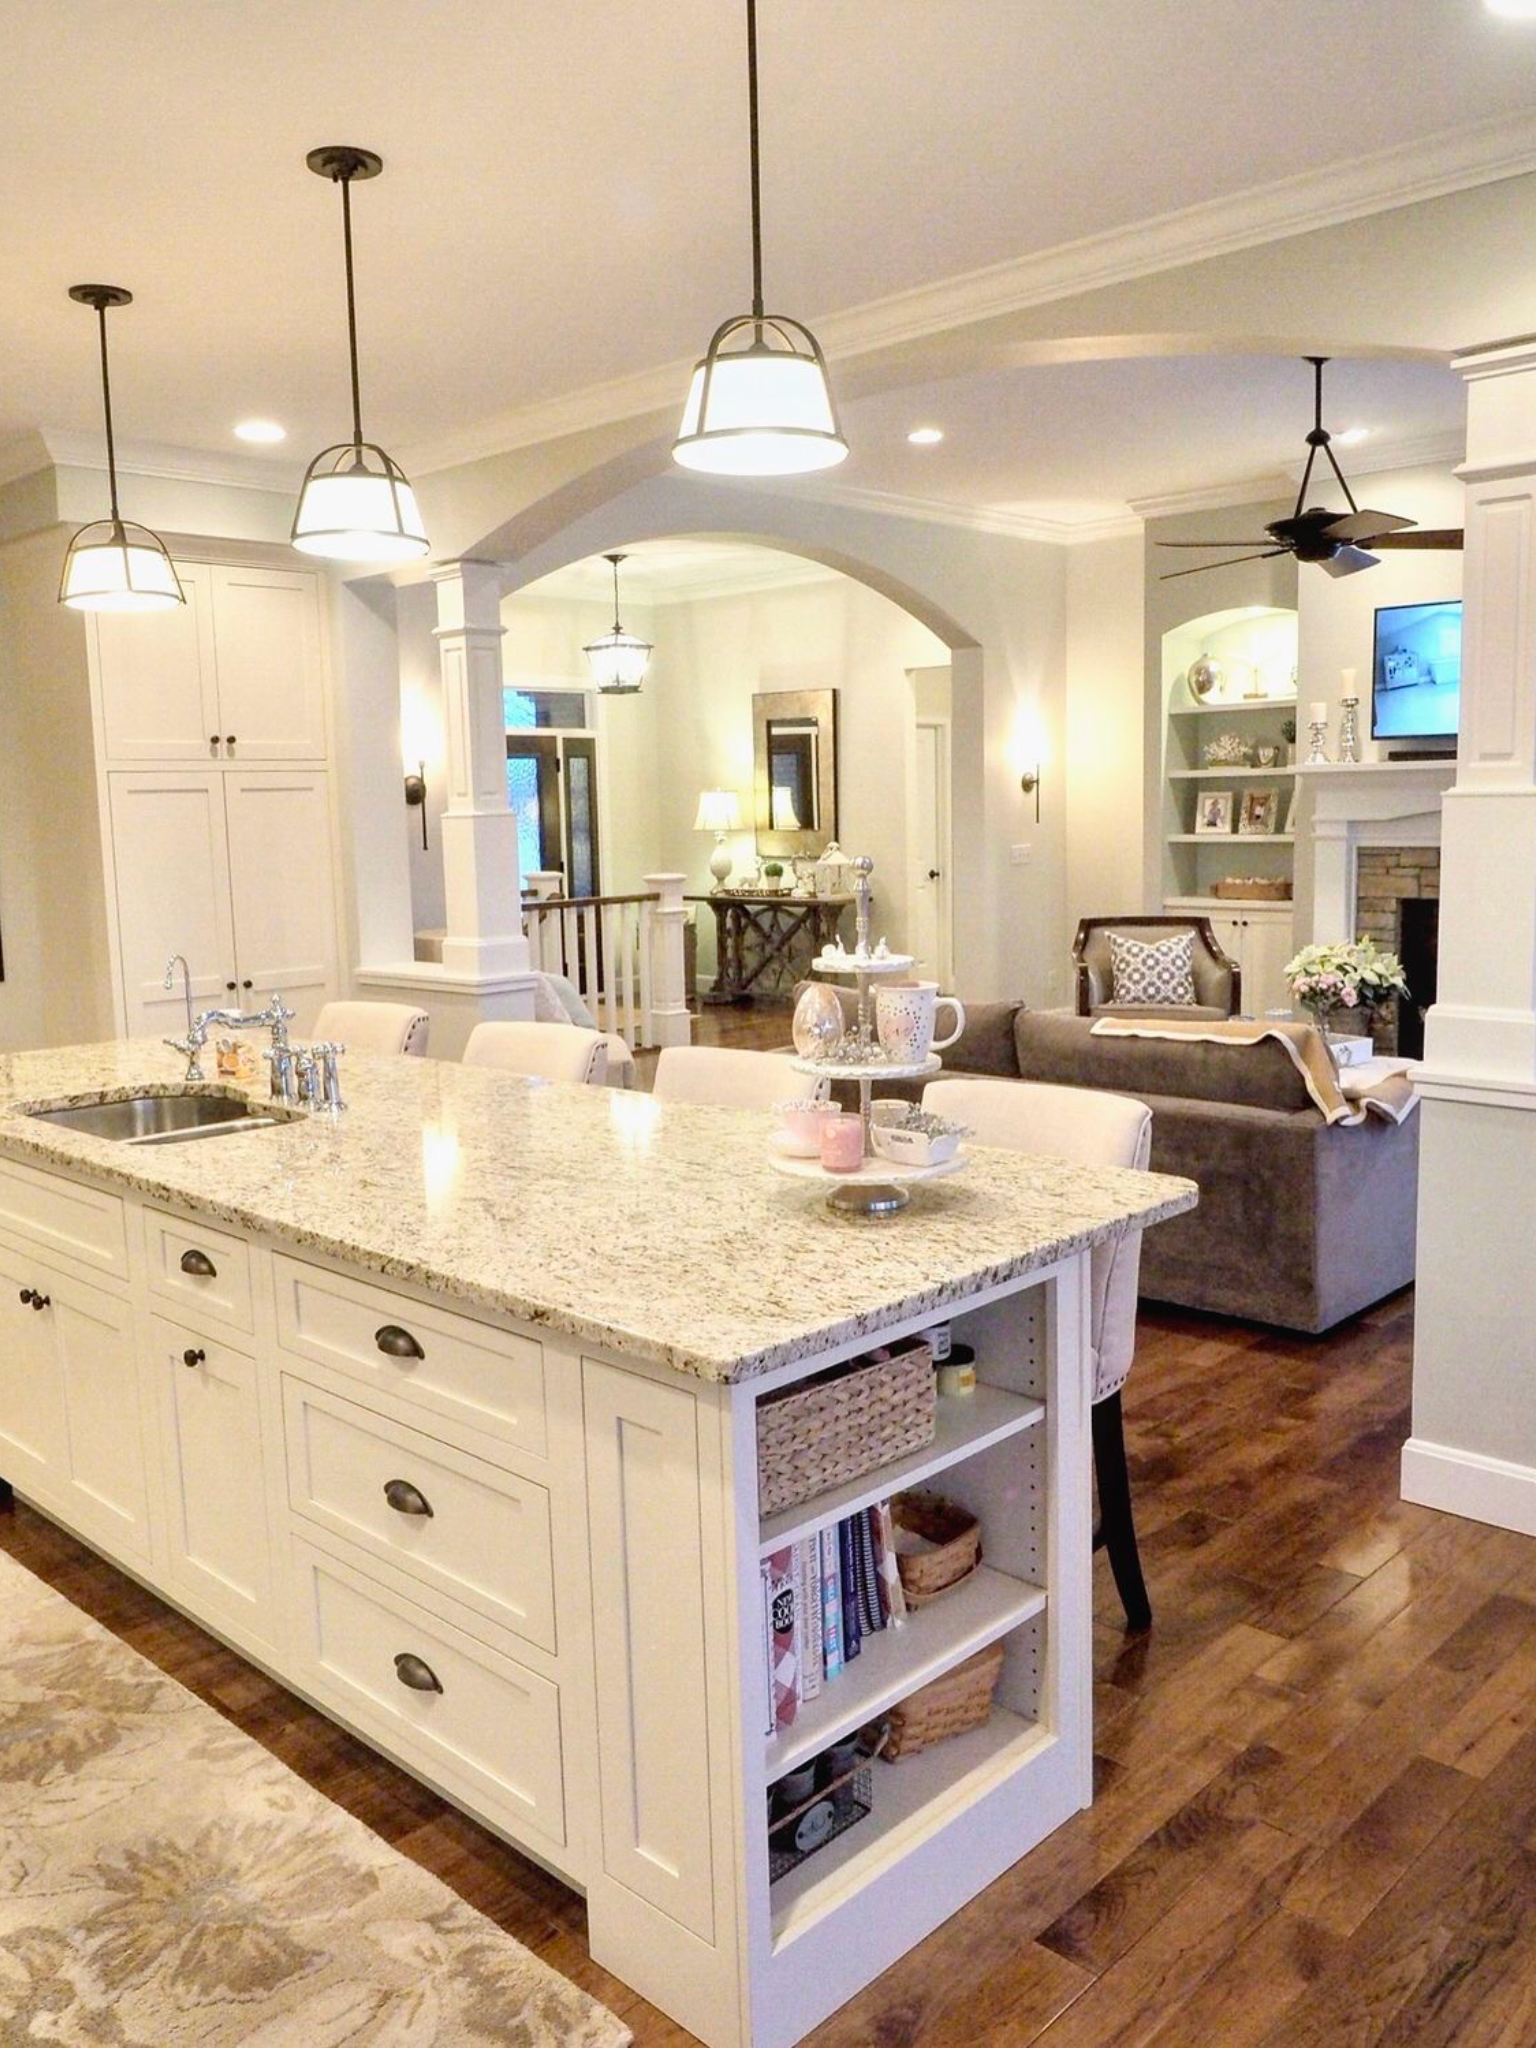 cabinets with cabinet decor white kitchen and off appliances